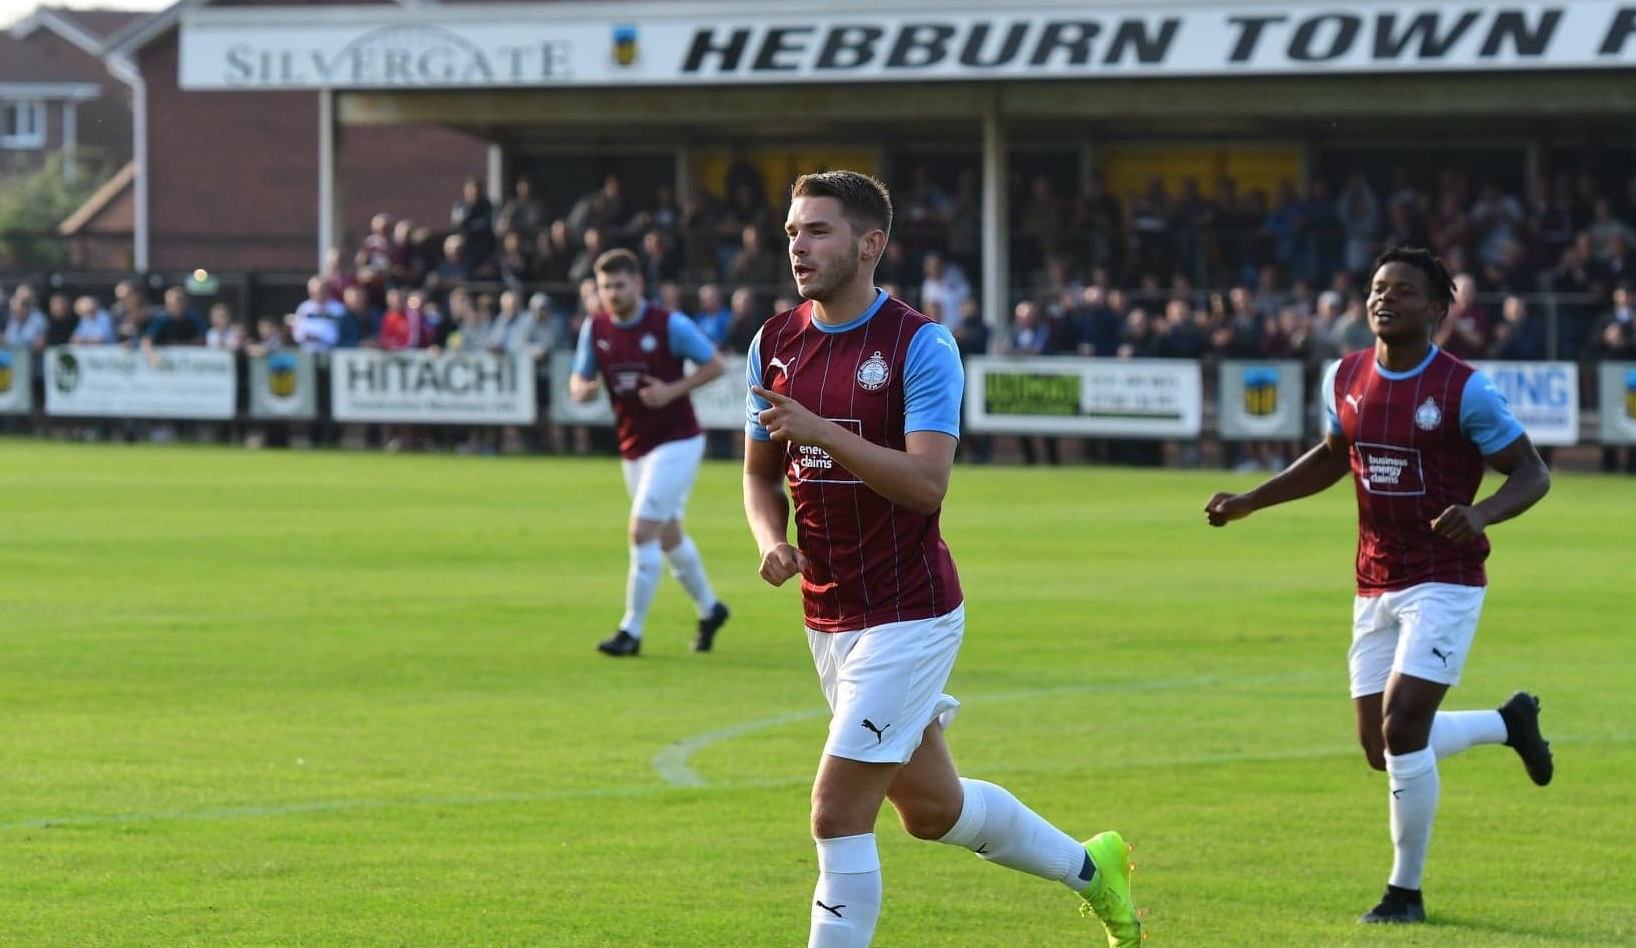 Hebburn Town 3-4 South Shields: Gilchrist at the double in pre-season win